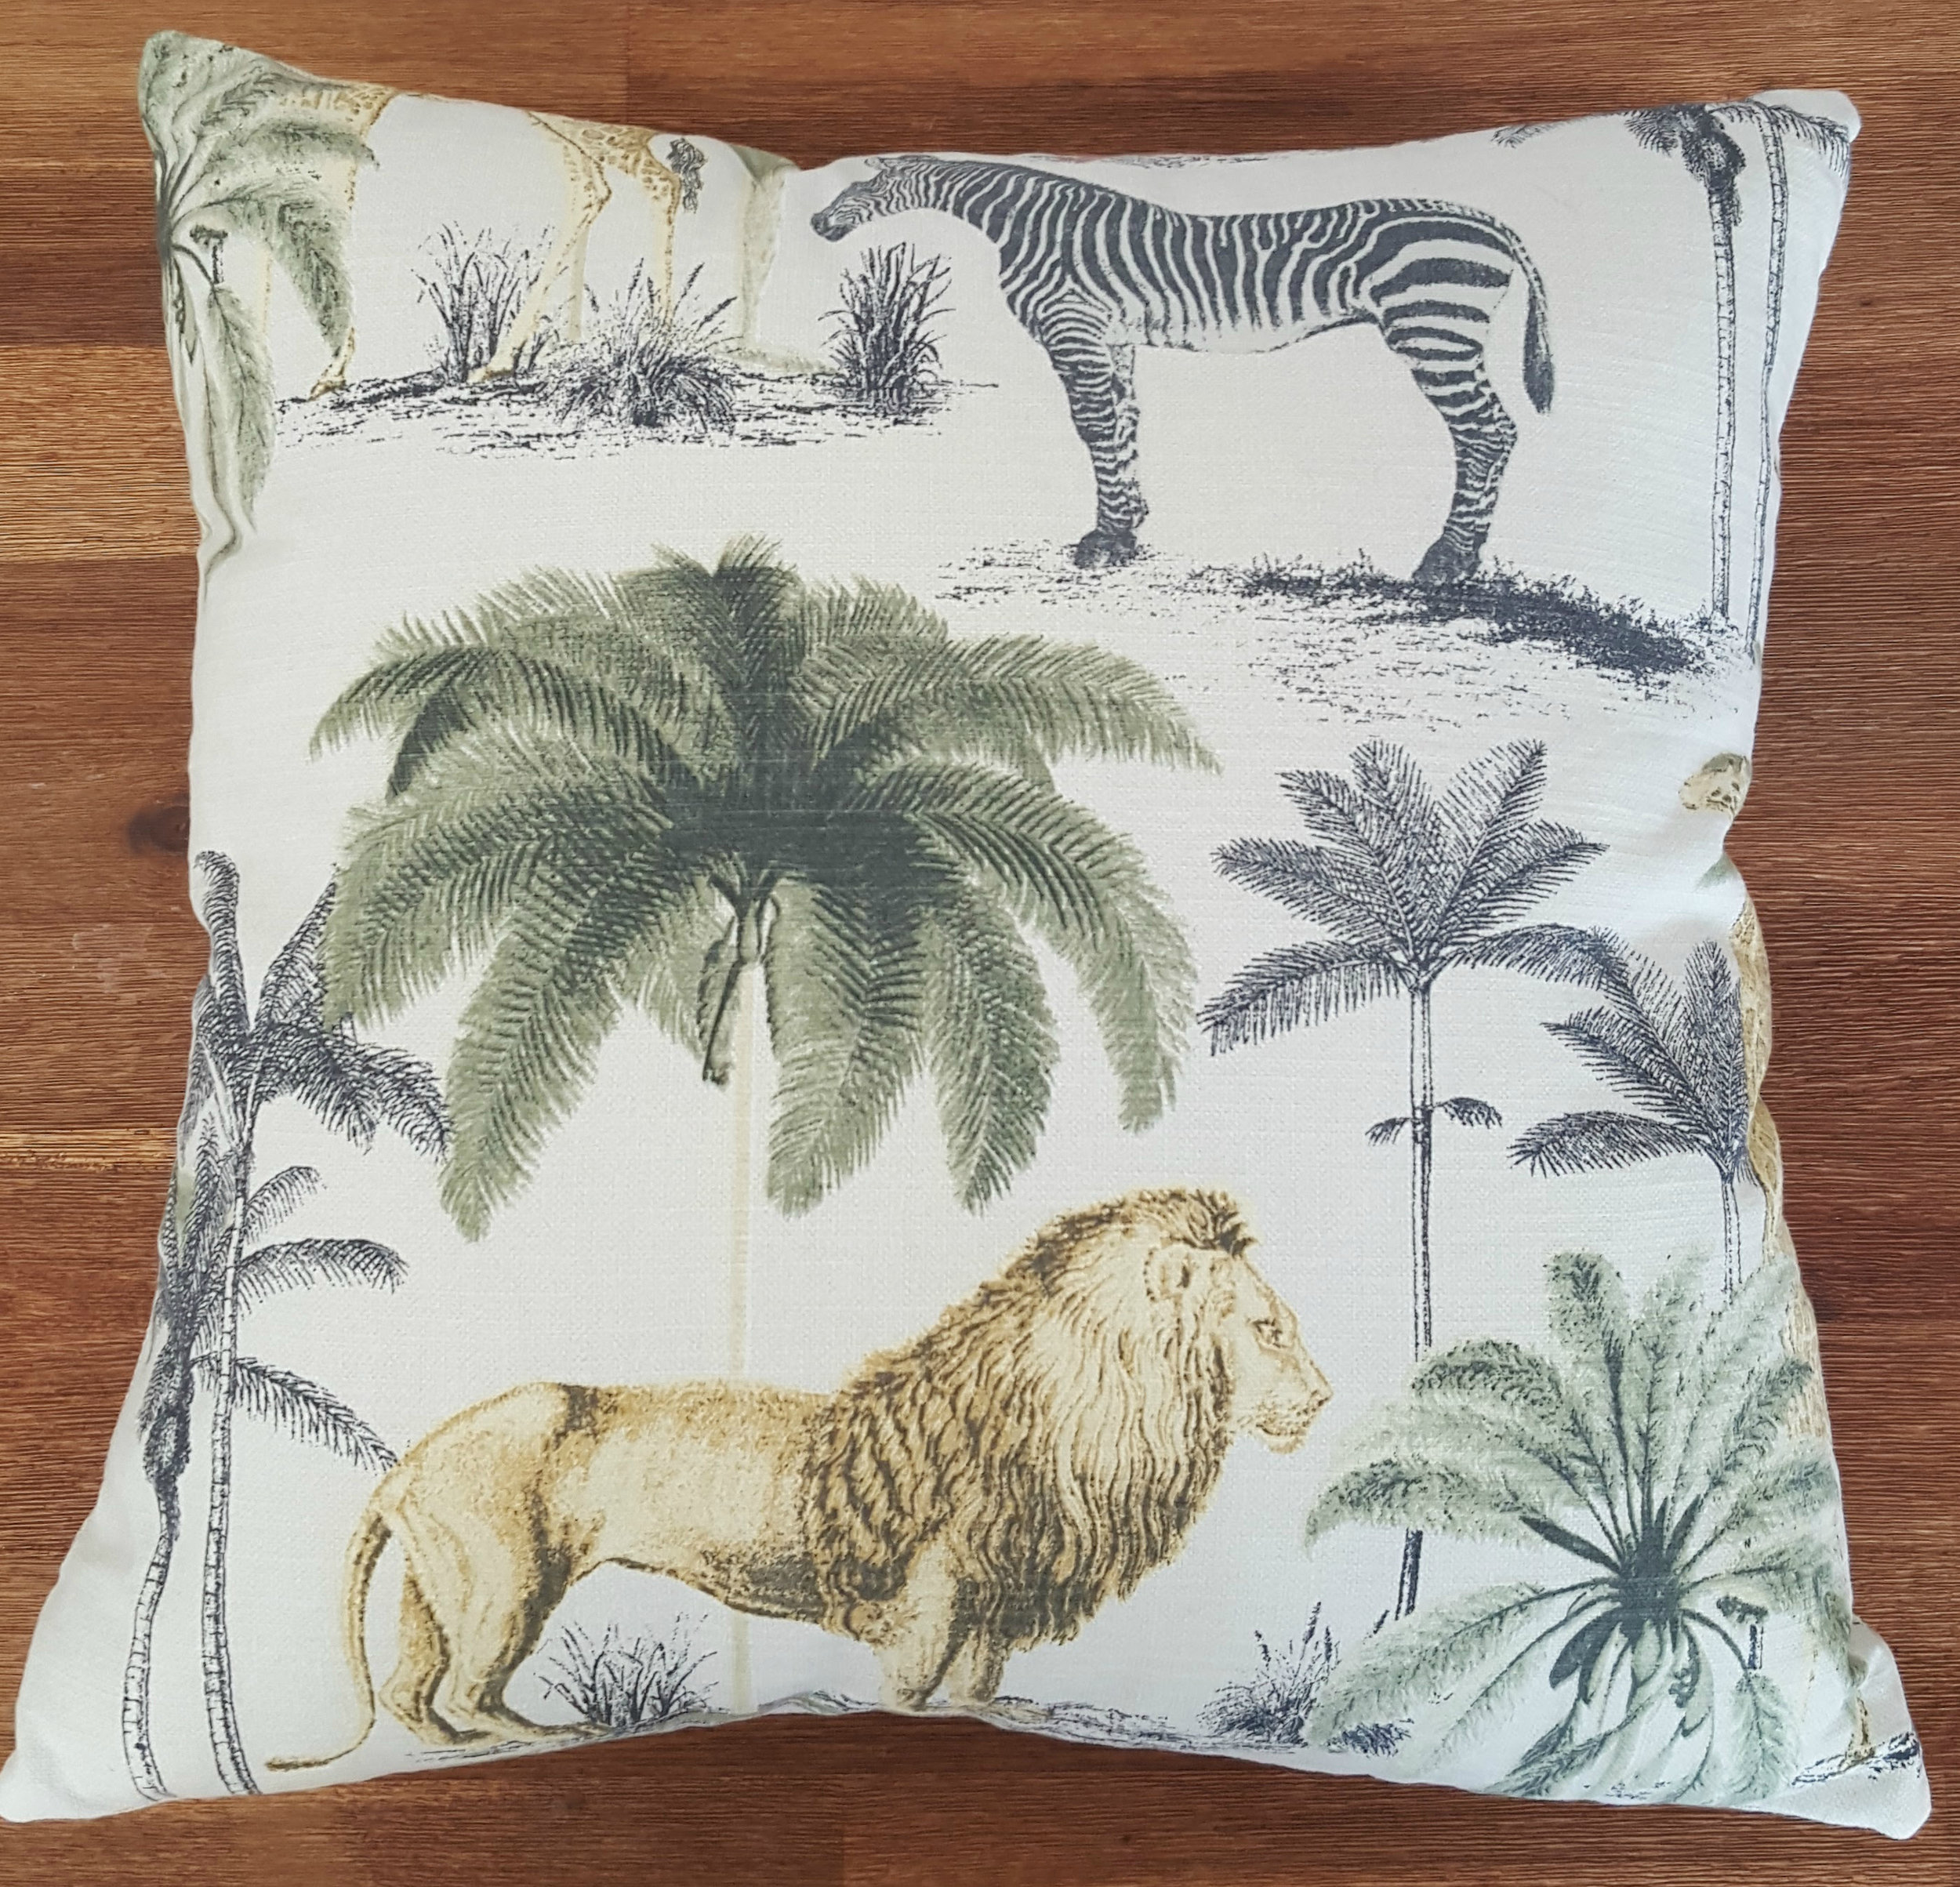 Lion Zebra Palm Animal Linen Scatter Cushion For Sale.jpg